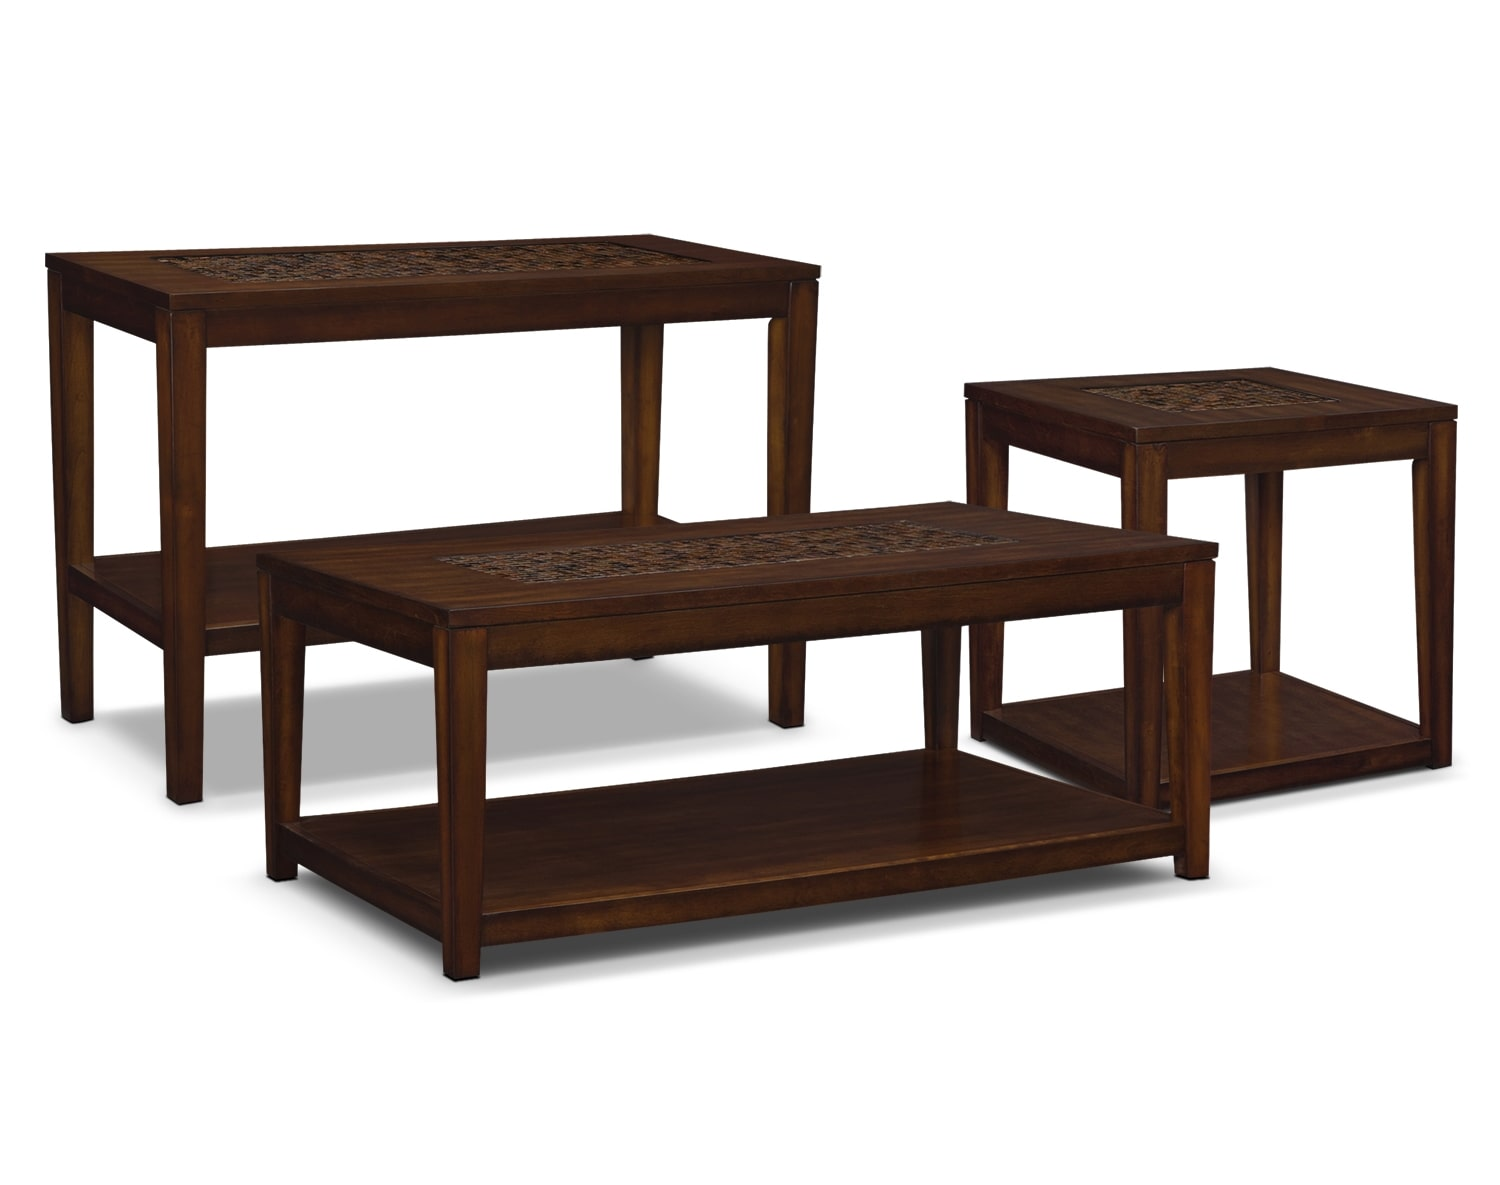 Accent and Occasional Furniture - The Shannon Collection - Cocktail Table